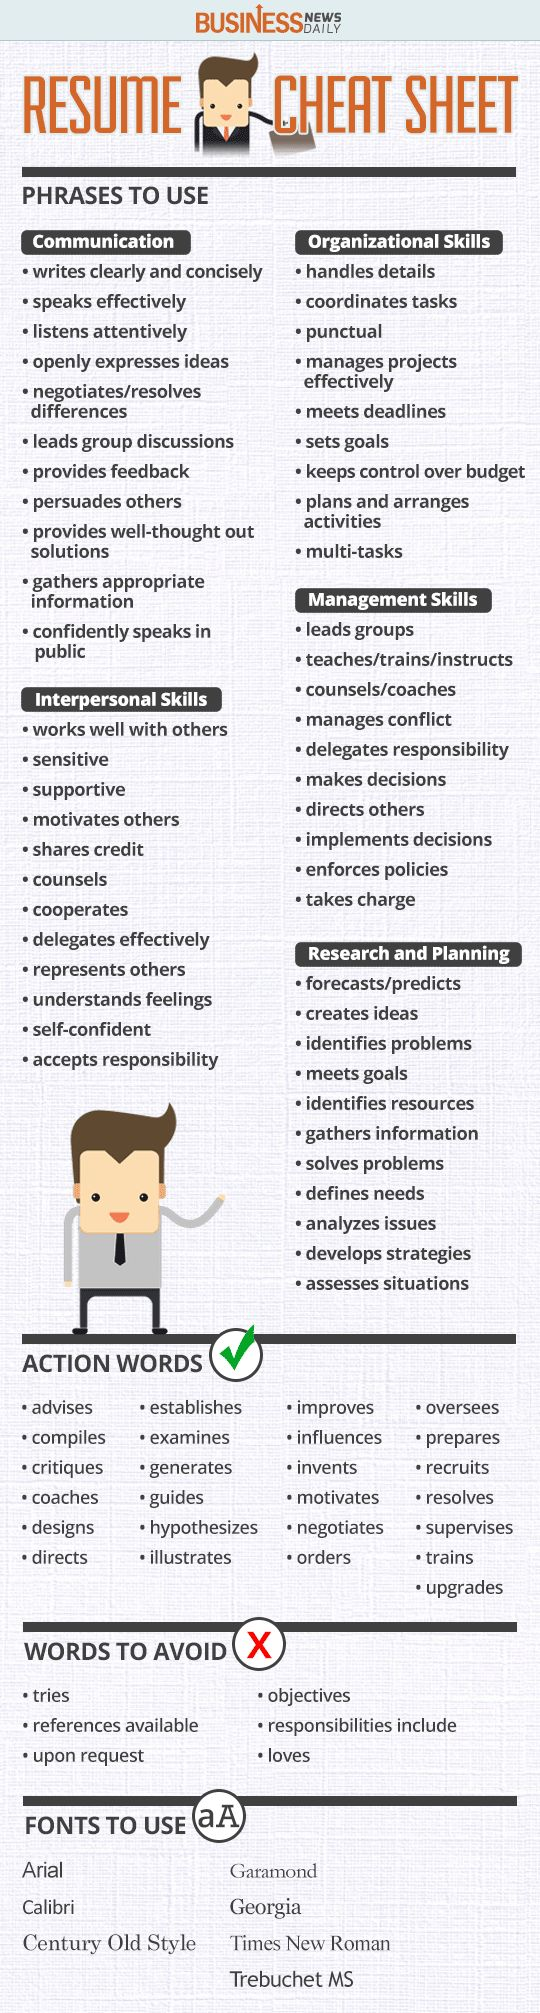 Opposenewapstandardsus  Marvelous  Ideas About Resume On Pinterest  Cv Format Resume Cv And  With Glamorous Resume Cheat Sheet Infographic Andrews Almost Done With A Complete Unit On Employment Which With Breathtaking Resume Basics Also Where To Post Resume In Addition Where Can I Print My Resume And High School Student Resume With No Work Experience As Well As Freelance Makeup Artist Resume Additionally High School Resume Example From Pinterestcom With Opposenewapstandardsus  Glamorous  Ideas About Resume On Pinterest  Cv Format Resume Cv And  With Breathtaking Resume Cheat Sheet Infographic Andrews Almost Done With A Complete Unit On Employment Which And Marvelous Resume Basics Also Where To Post Resume In Addition Where Can I Print My Resume From Pinterestcom